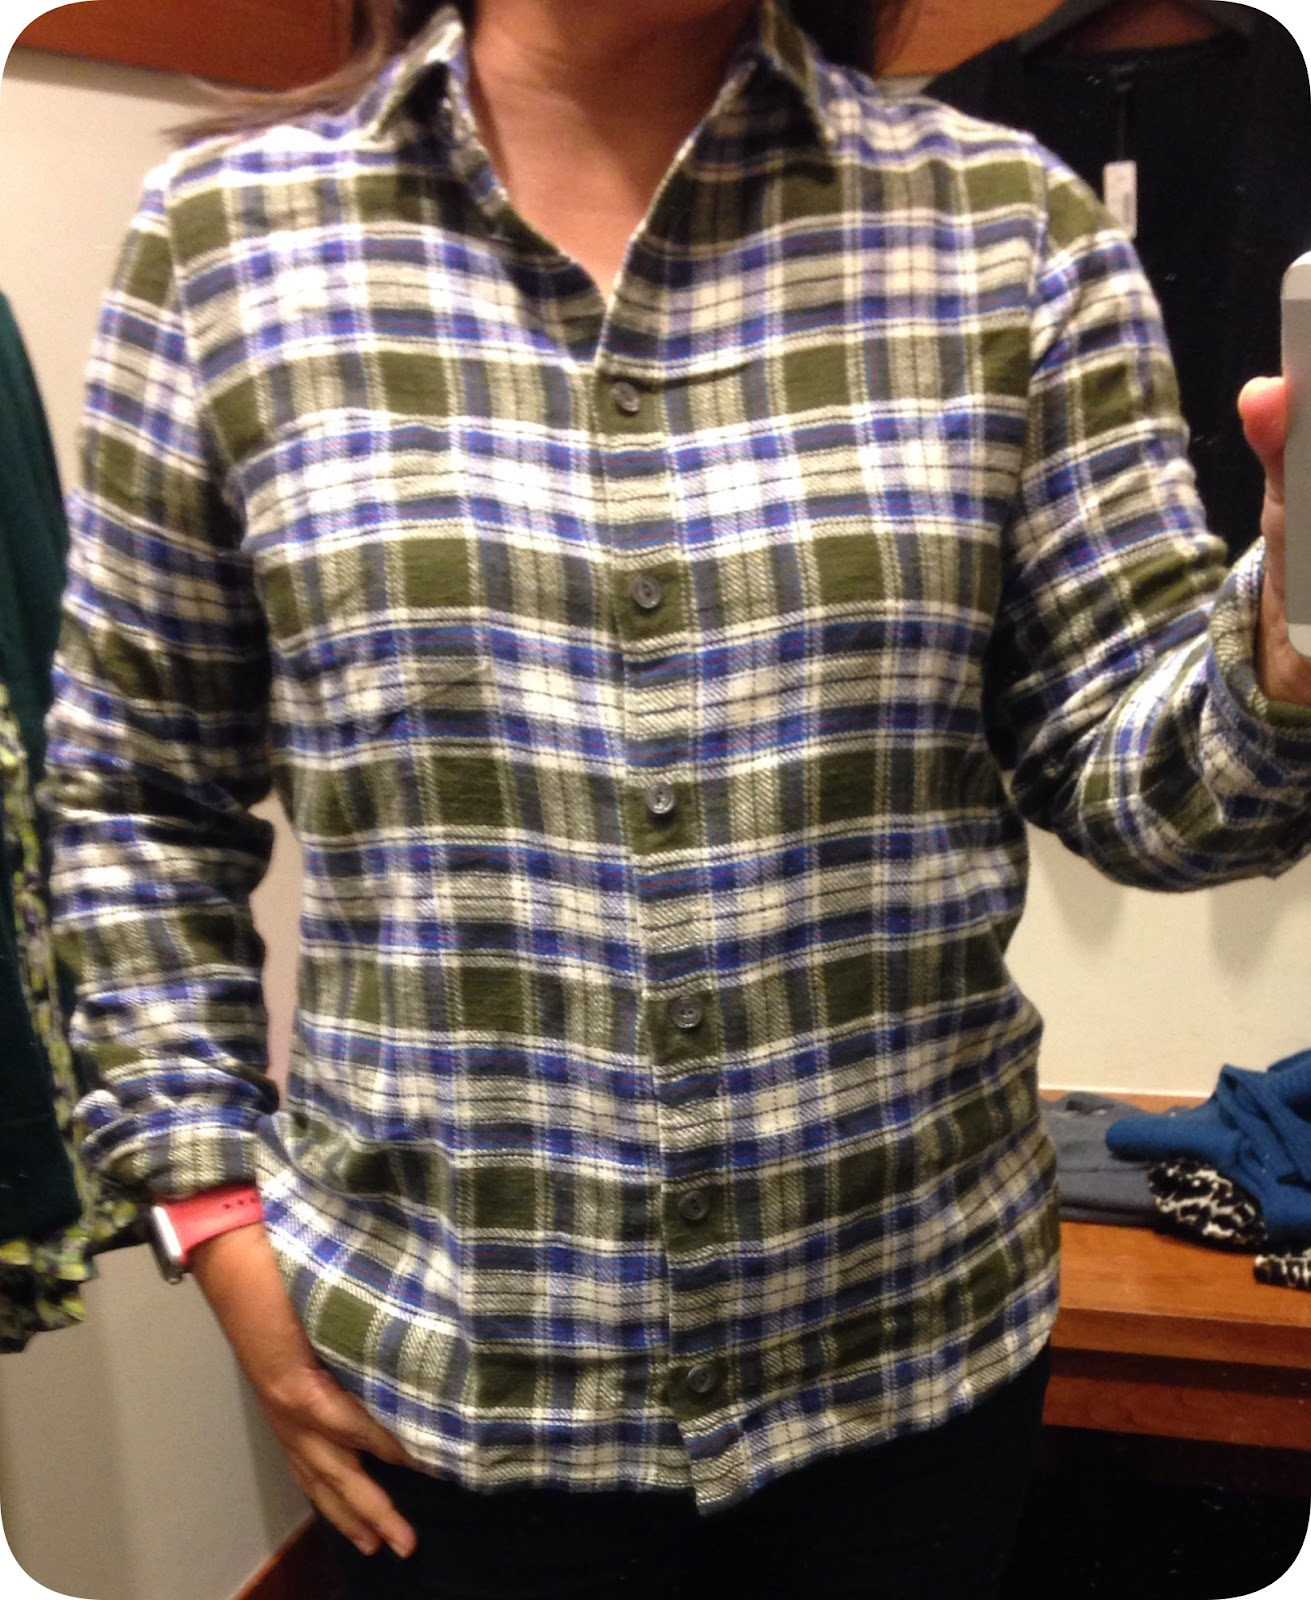 214854cf The olive green is just as saturated IRL as it is online and what  originally drew me to this shirt.